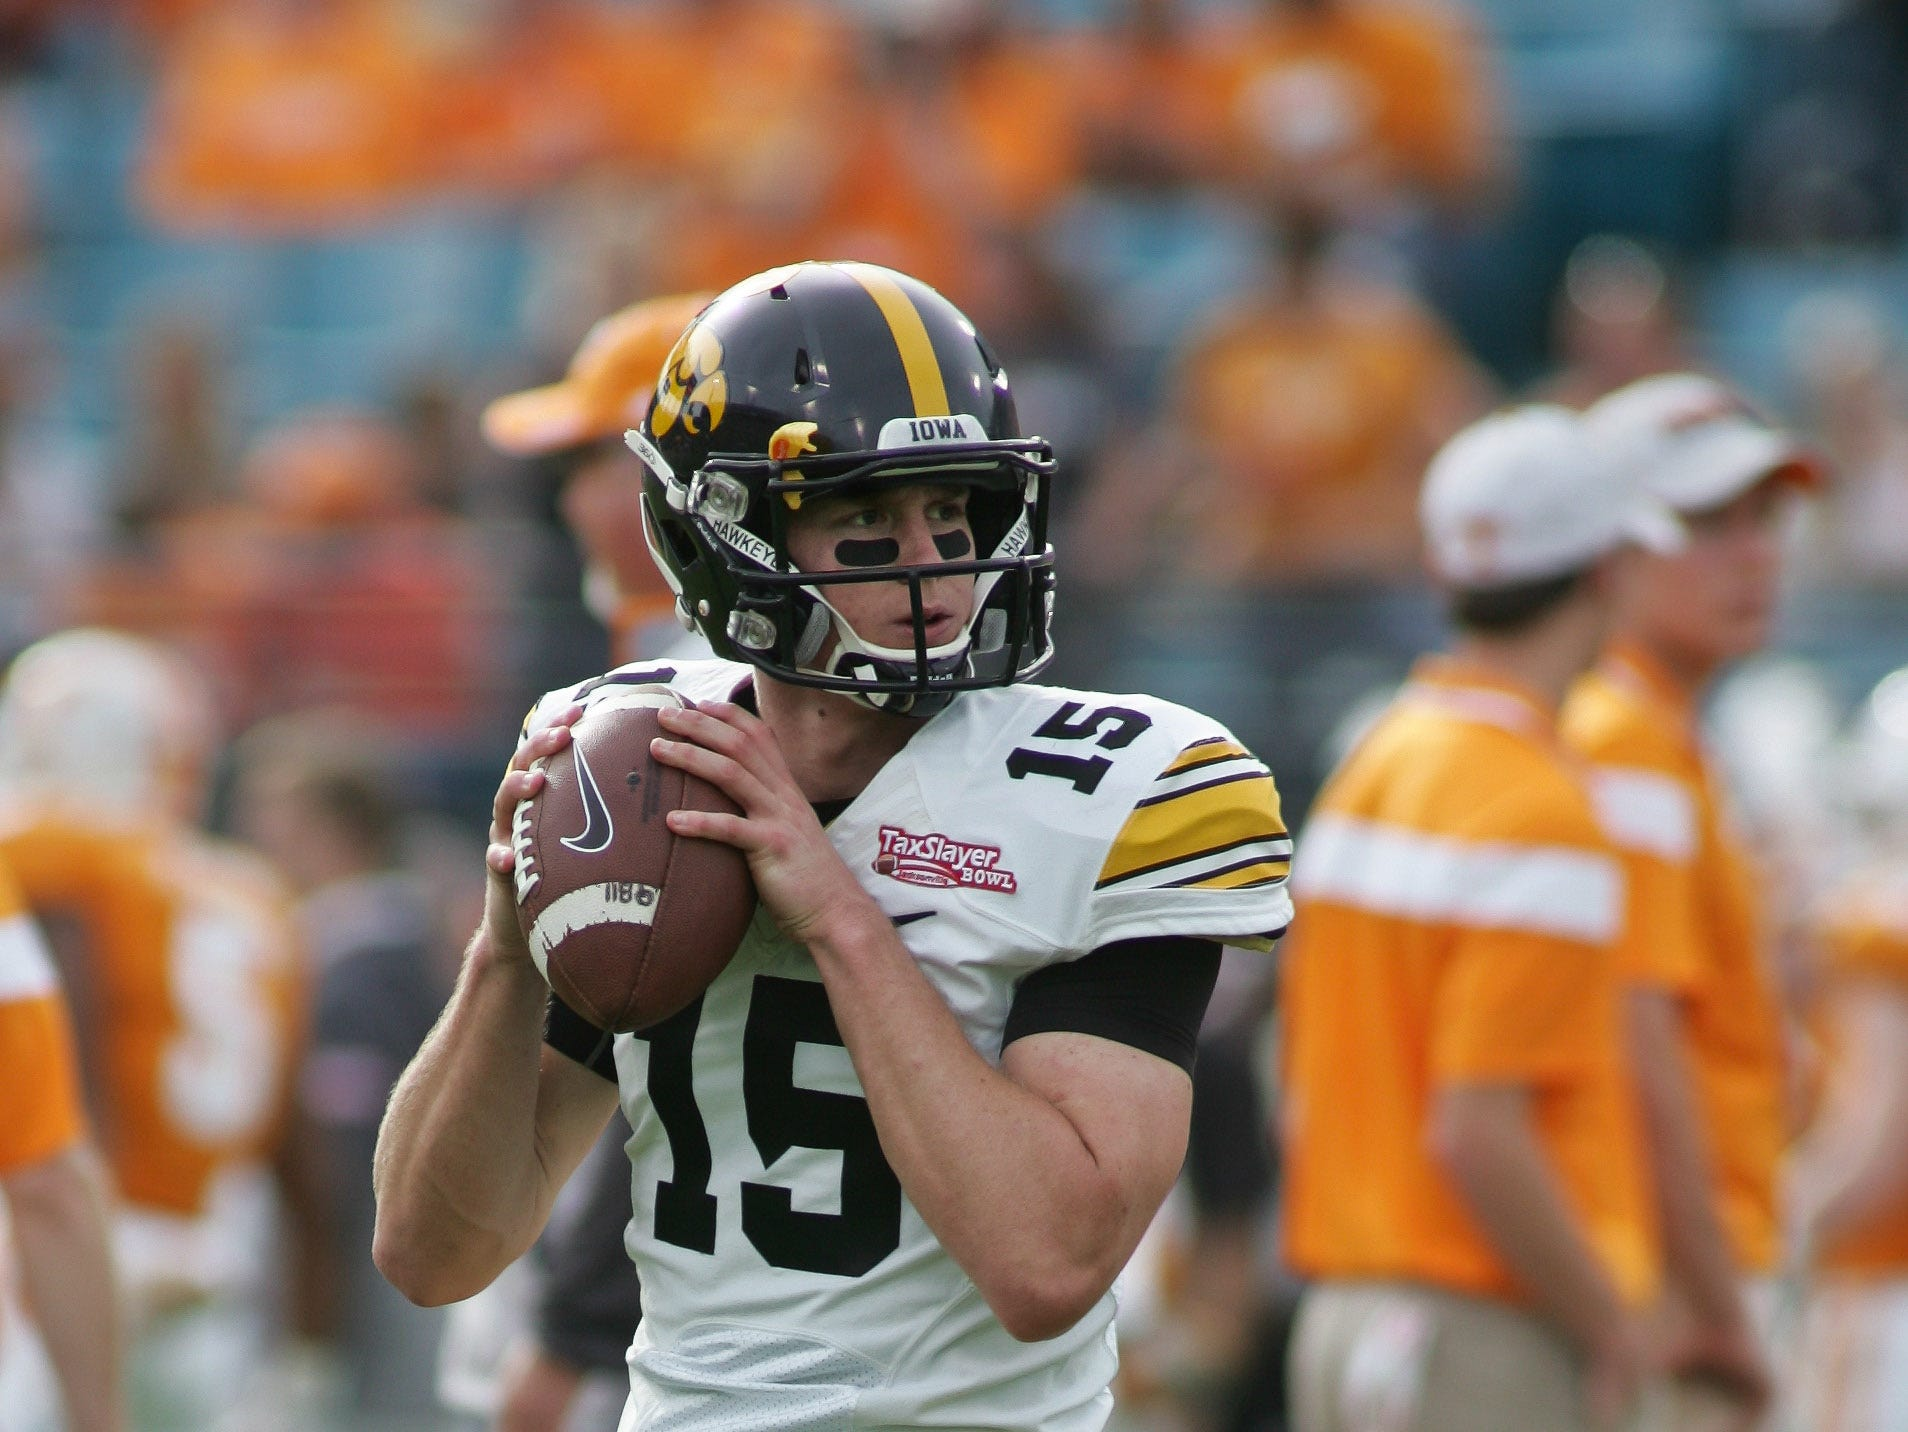 Jan 2, 2015; Jacksonville, FL, USA; Iowa Hawkeyes quarterback Jake Rudock (15) warms up before the start of the 2015 TaxSlayer Bowl against the Tennessee Volunteers at EverBank Field. The Tennessee Volunteers beat the Iowa Hawkeyes 45-28. Mandatory Credit: Phil Sears-USA TODAY Sports